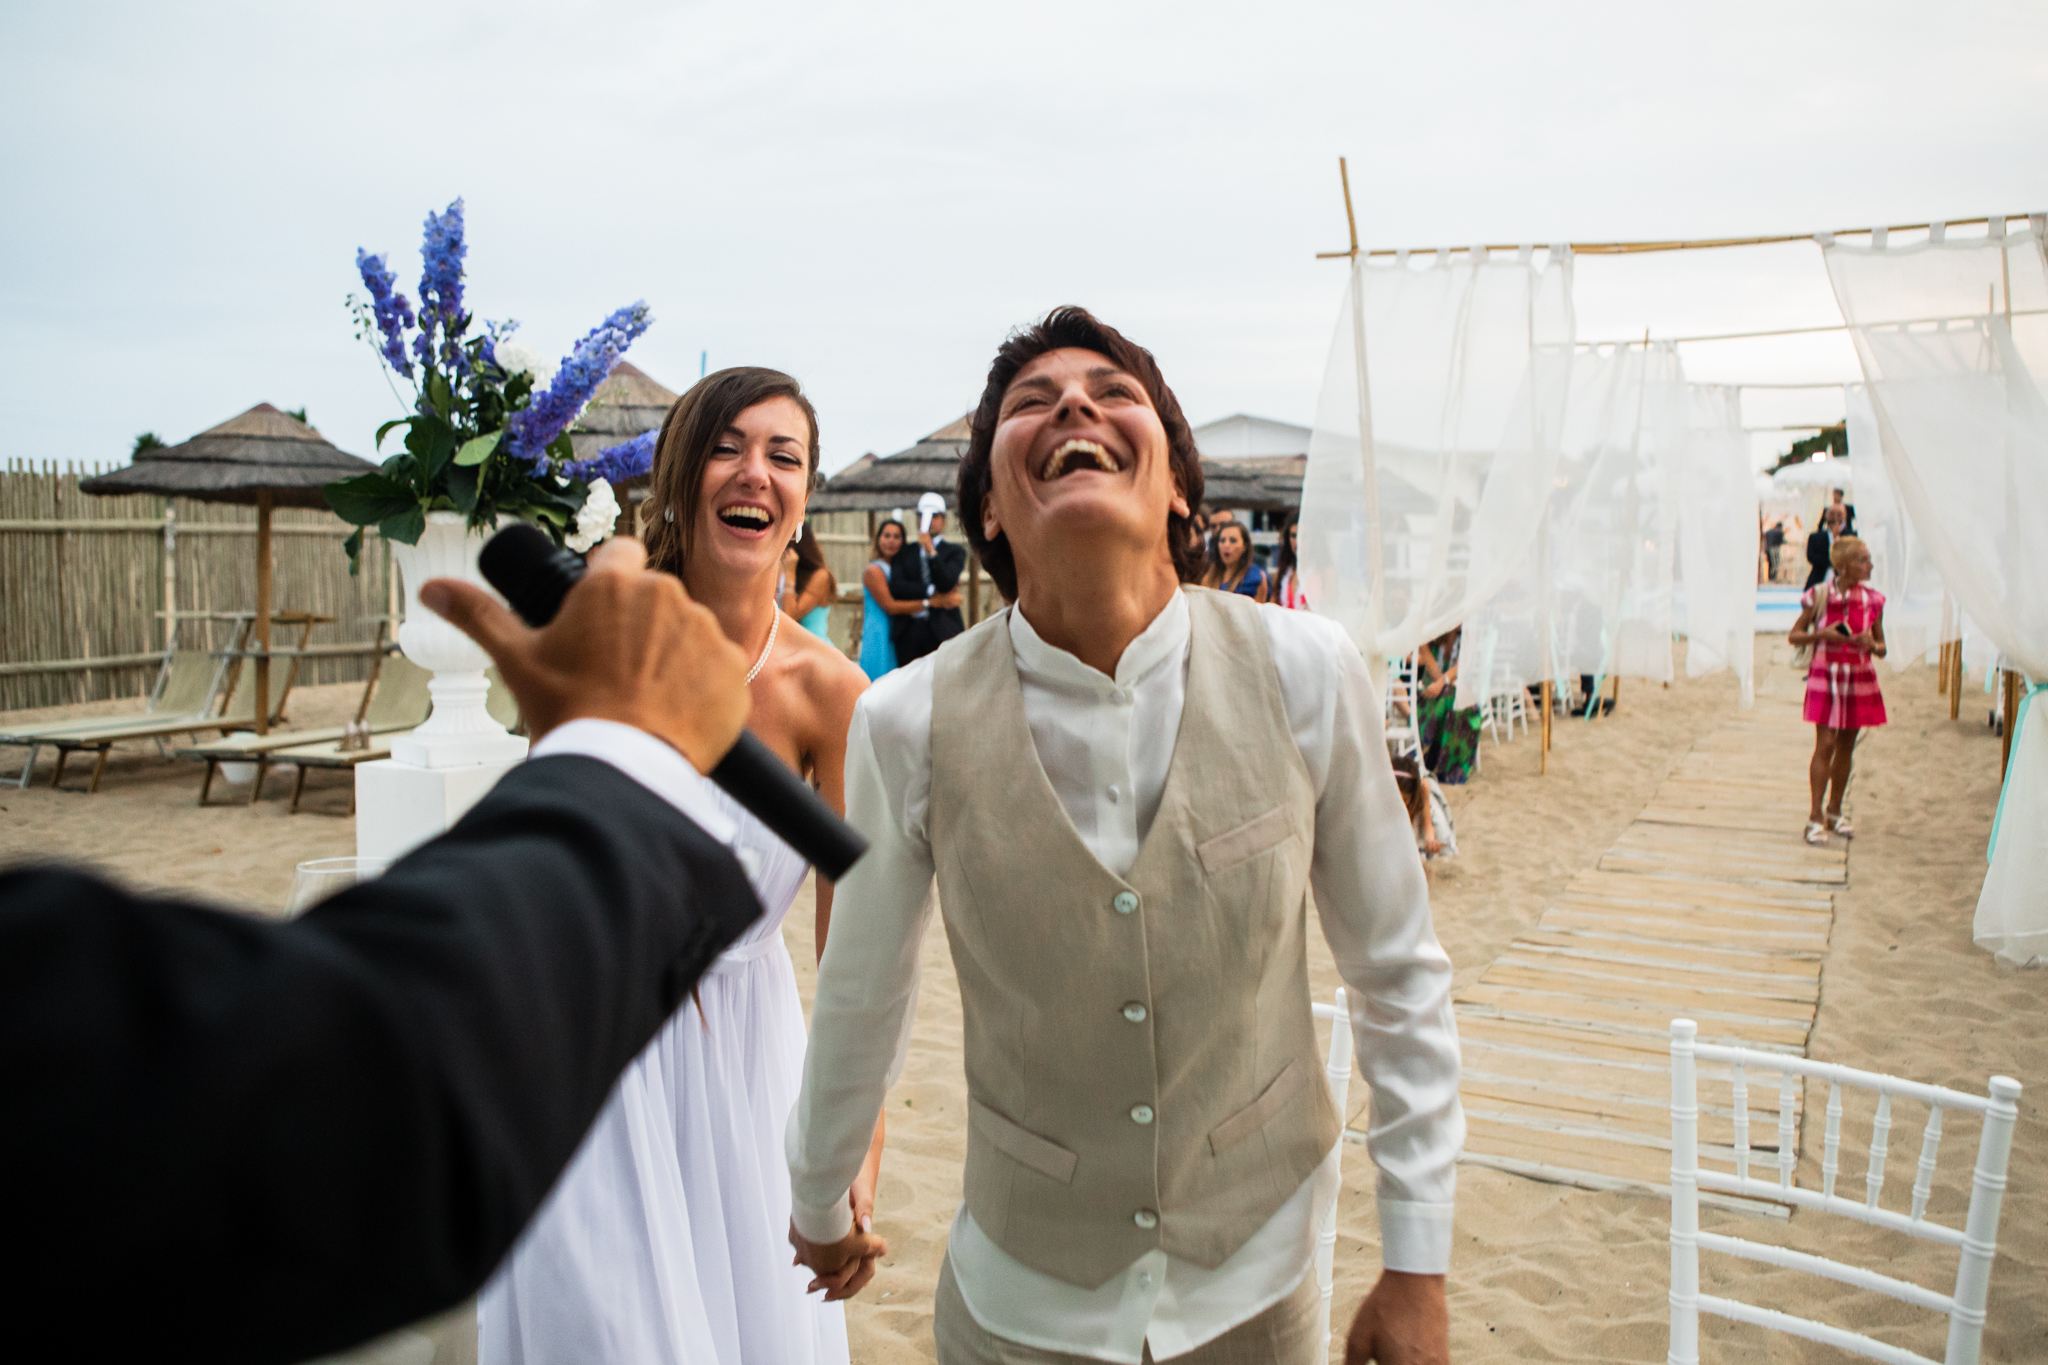 enkant-fotografia-video-matrimonio-catania-21.jpg